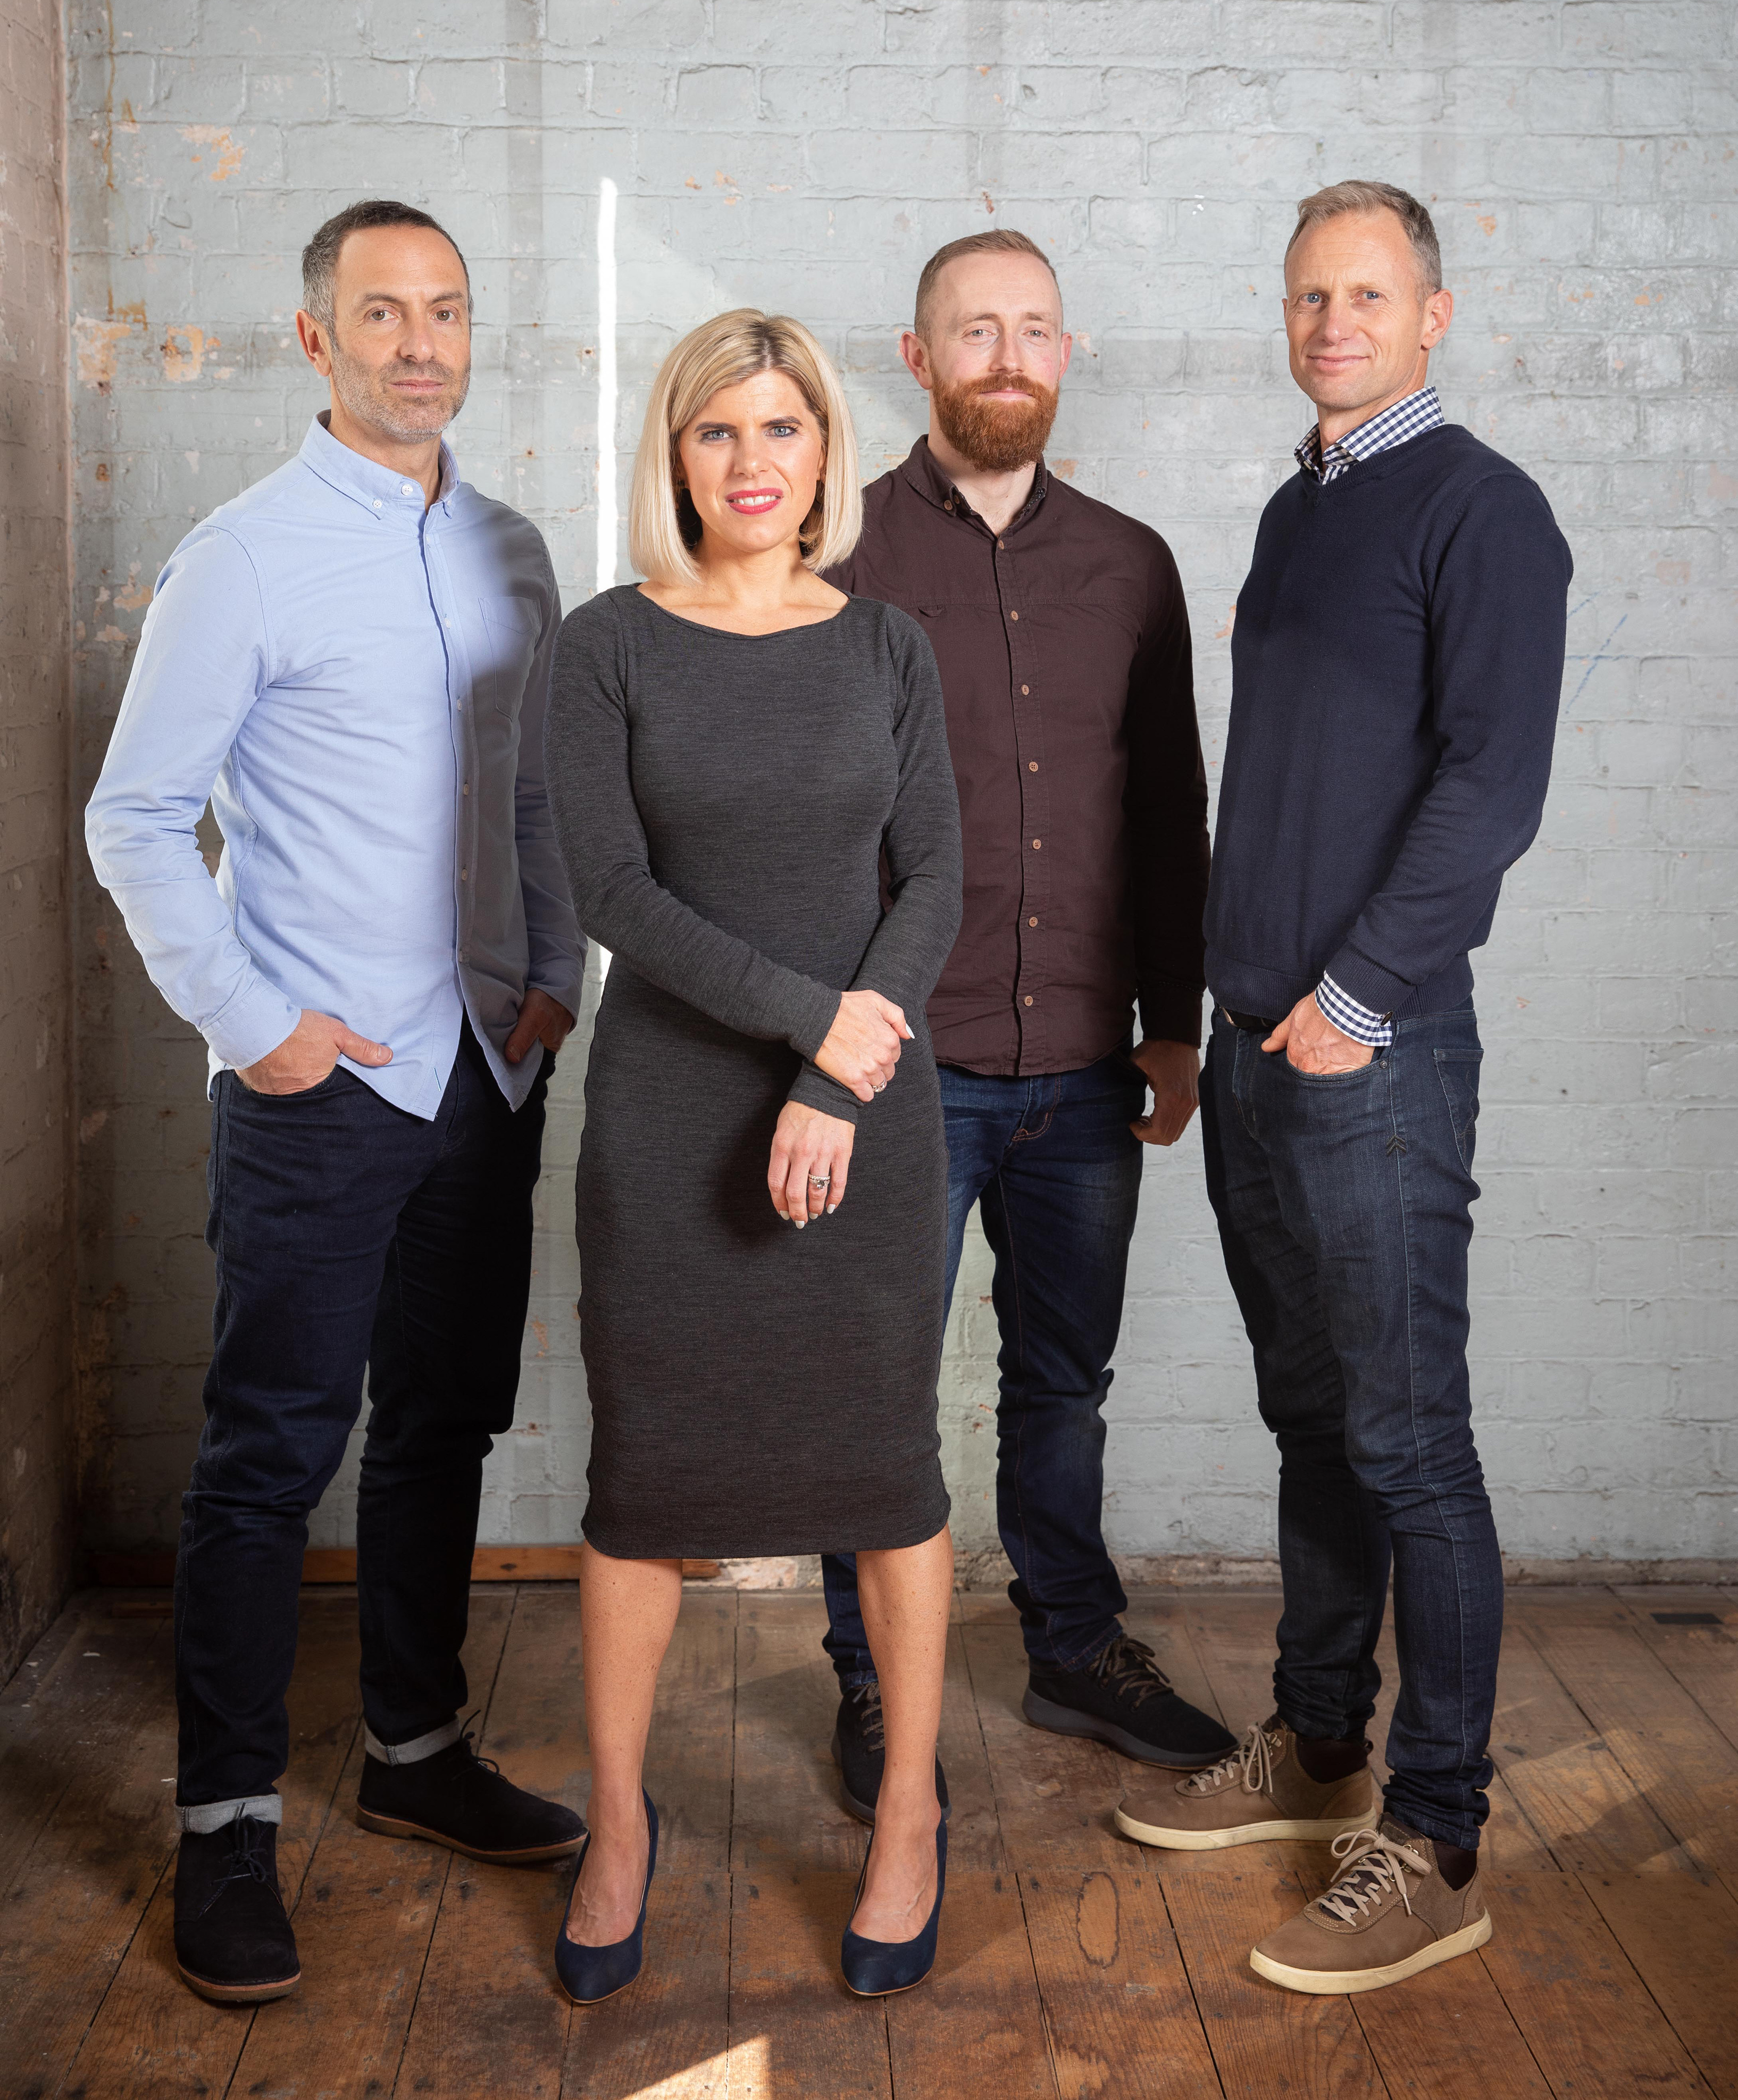 Pictured from Left to right: Steve Alexander (Managing Director), Kimberley Edgell (Practice Lead), Jon Martin (Head of Design), Blake Lough (Director of Experience)